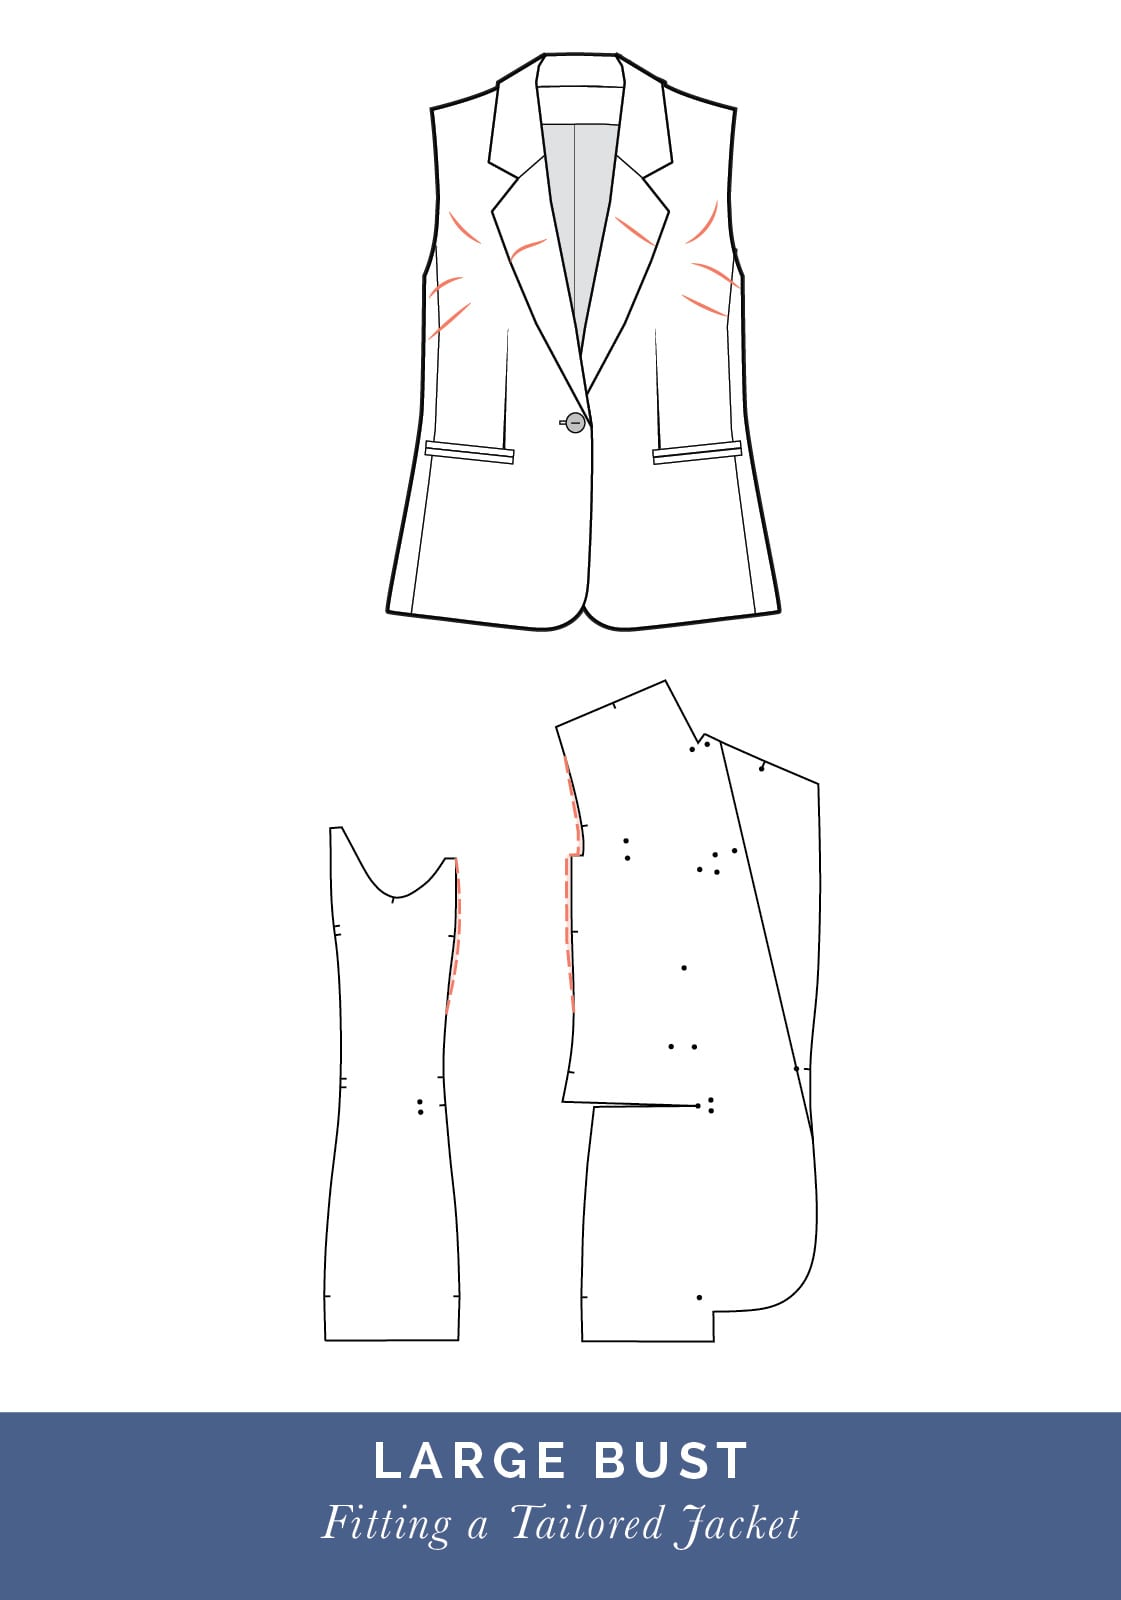 Large bust adjustment // How to fit a Tailored jacket or Blazer // Fit adjustment issues and fixes